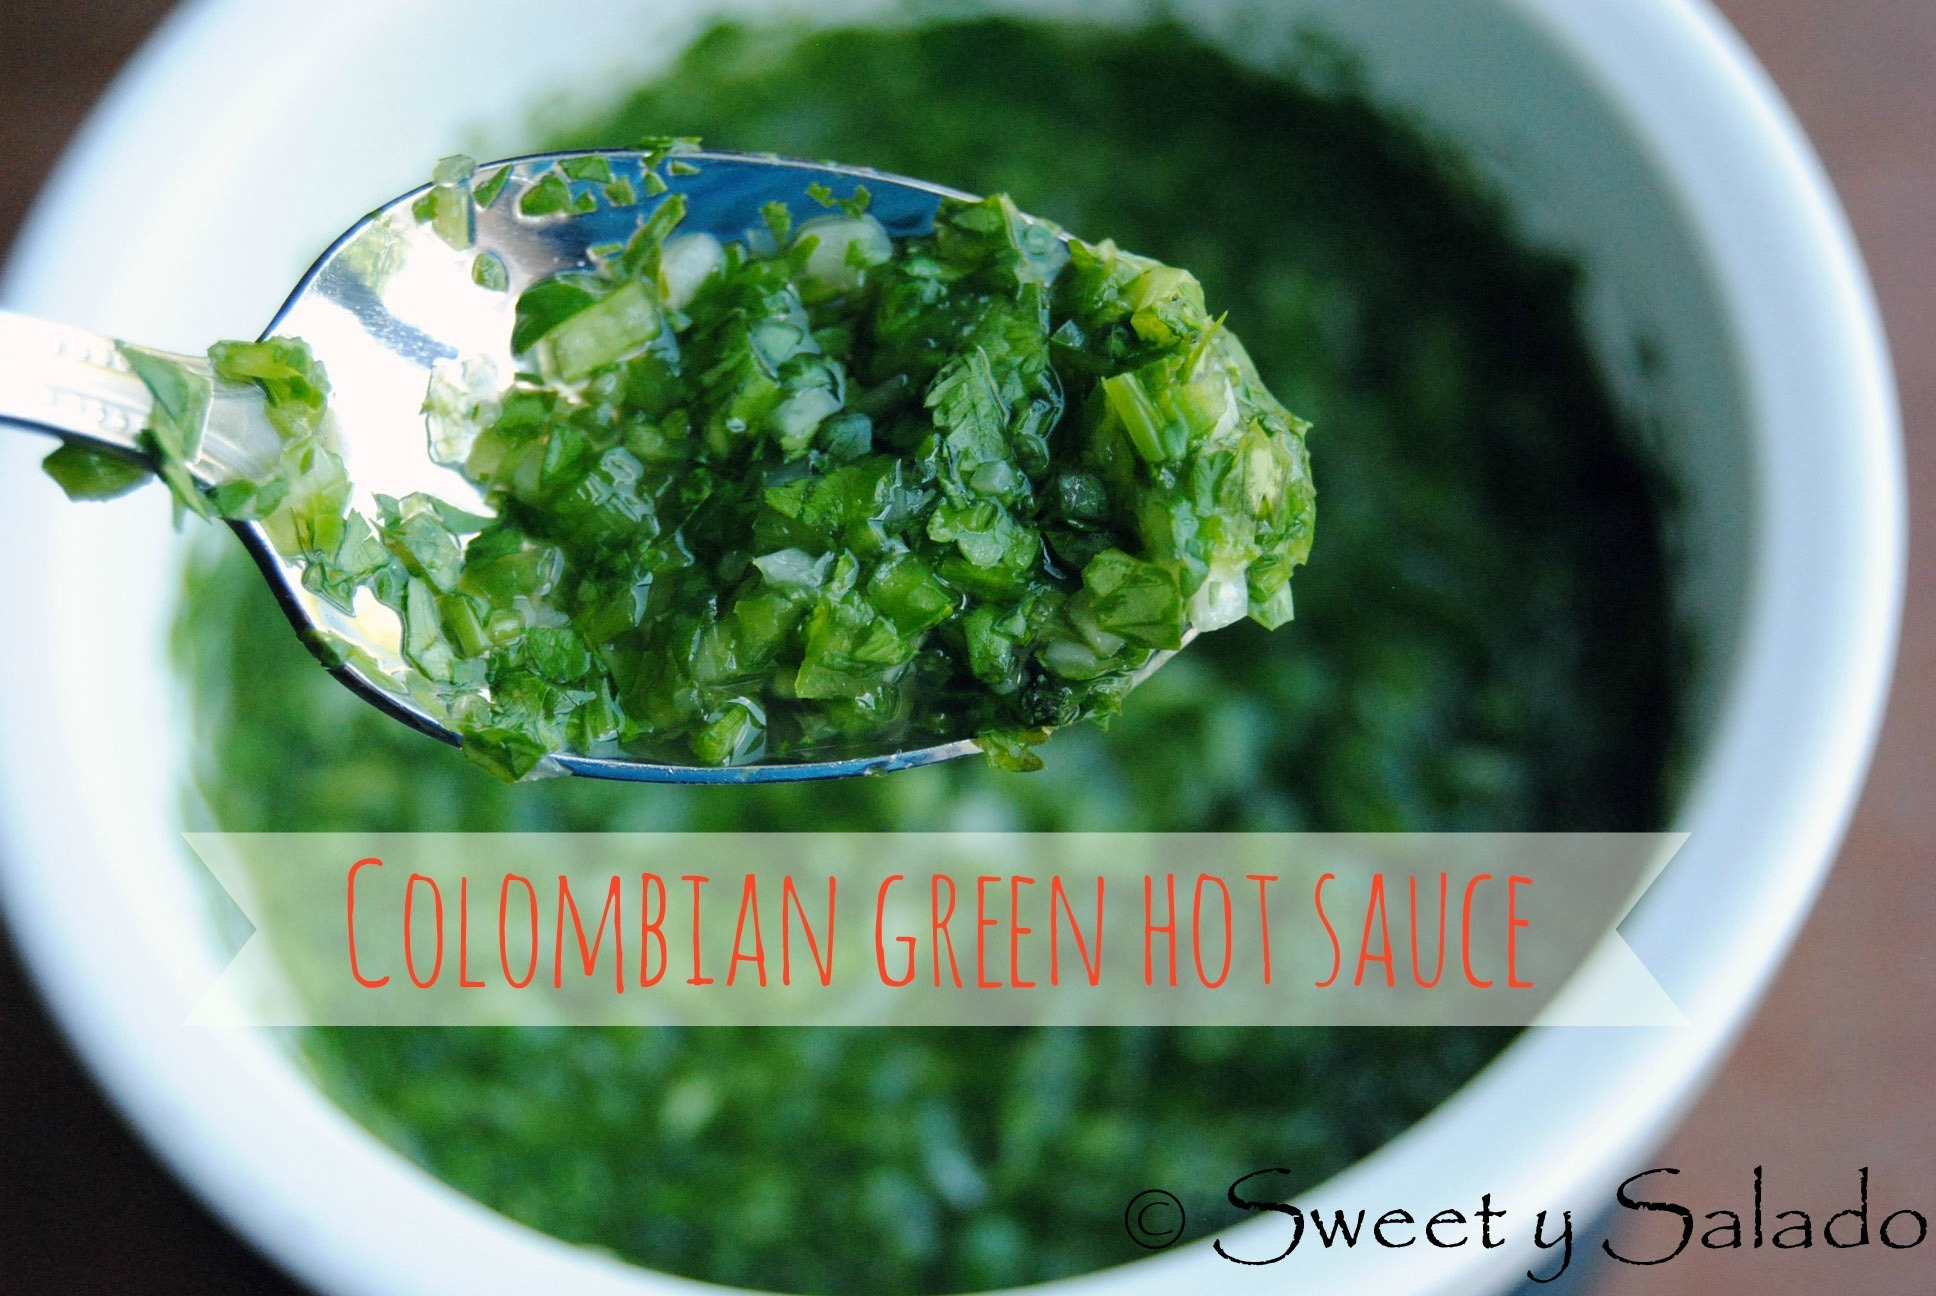 Colombian Green Hot Sauce